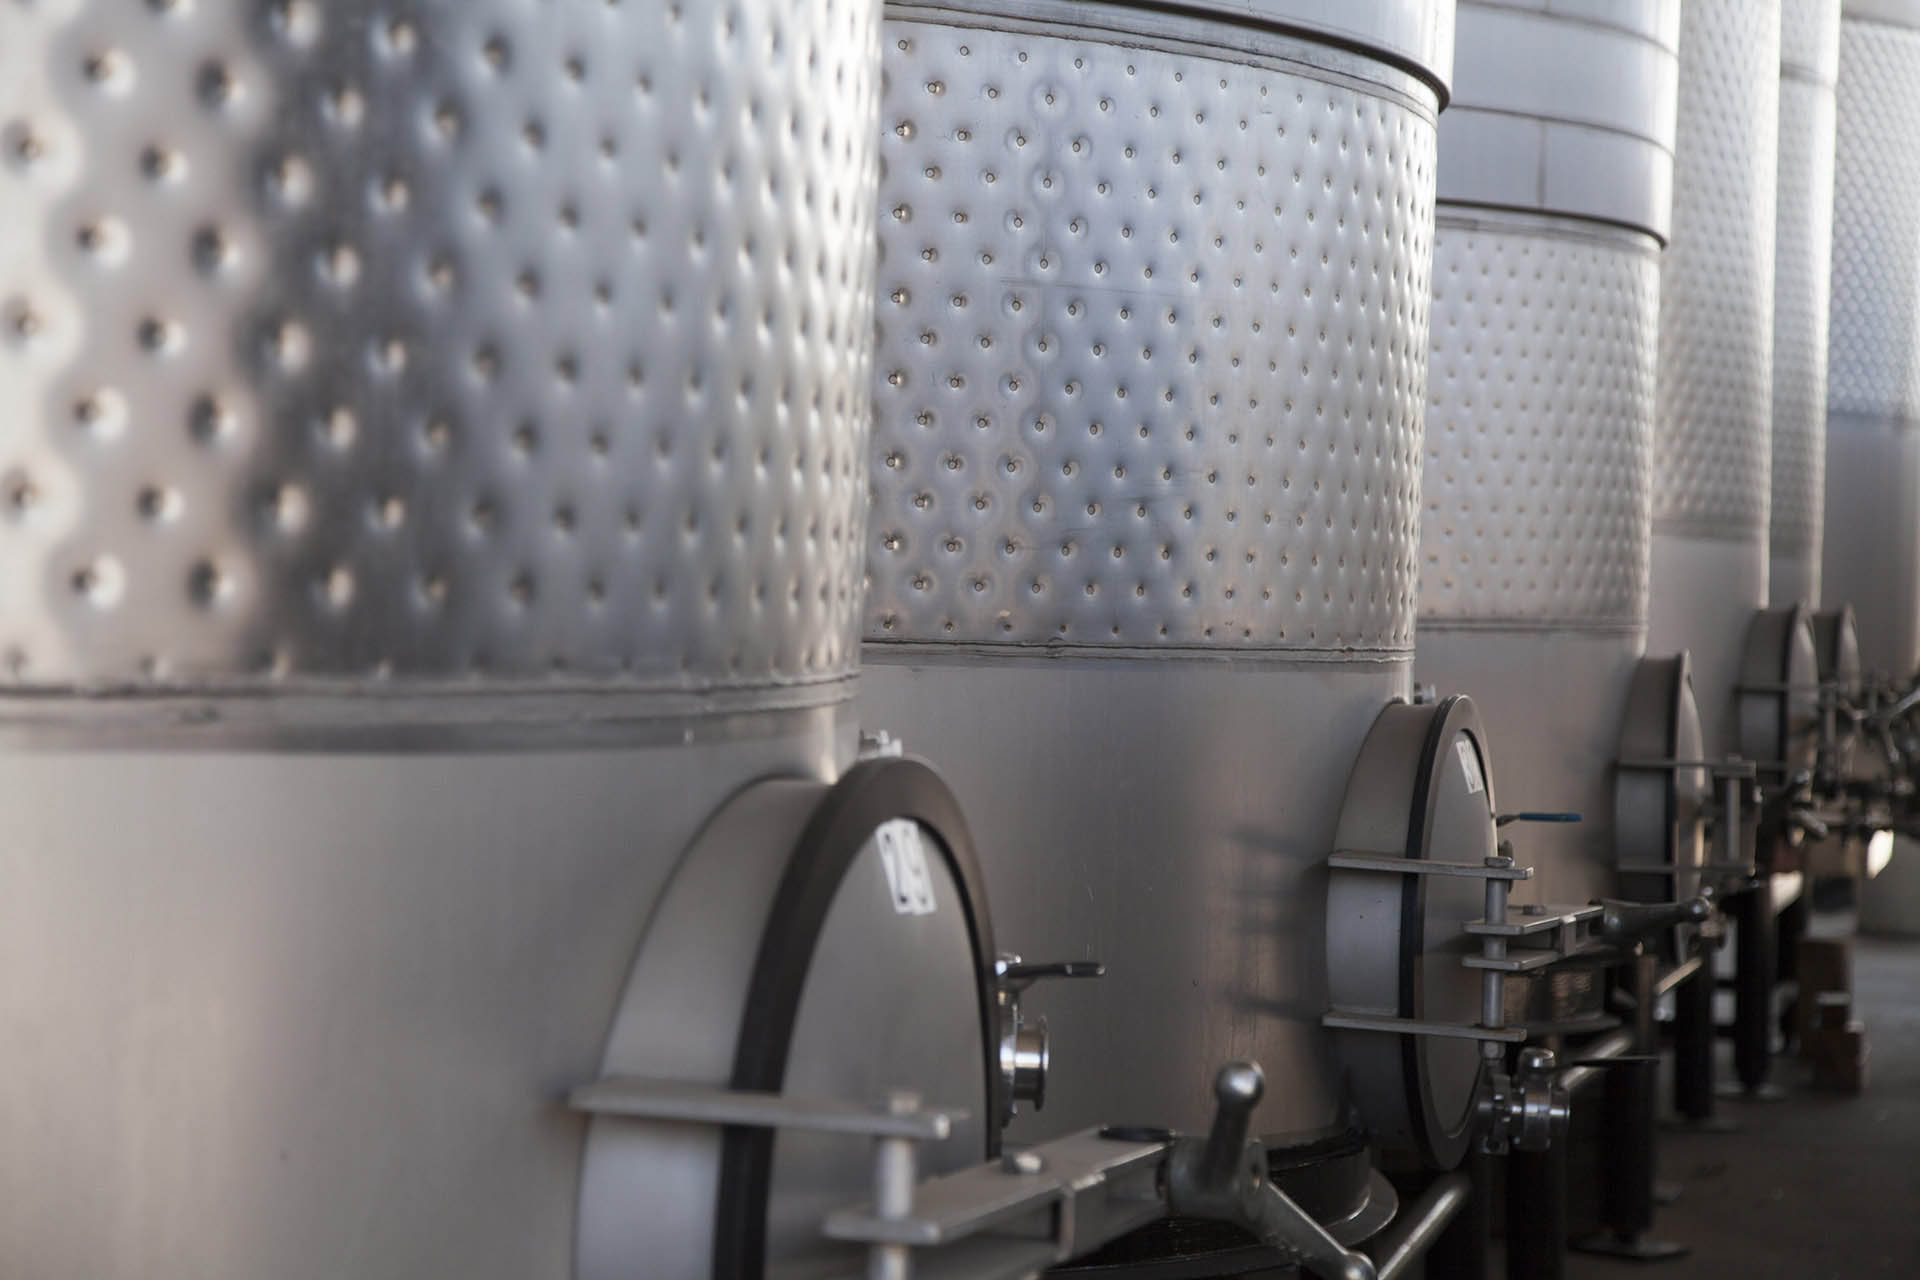 Stainless steel wine tanks / Getty